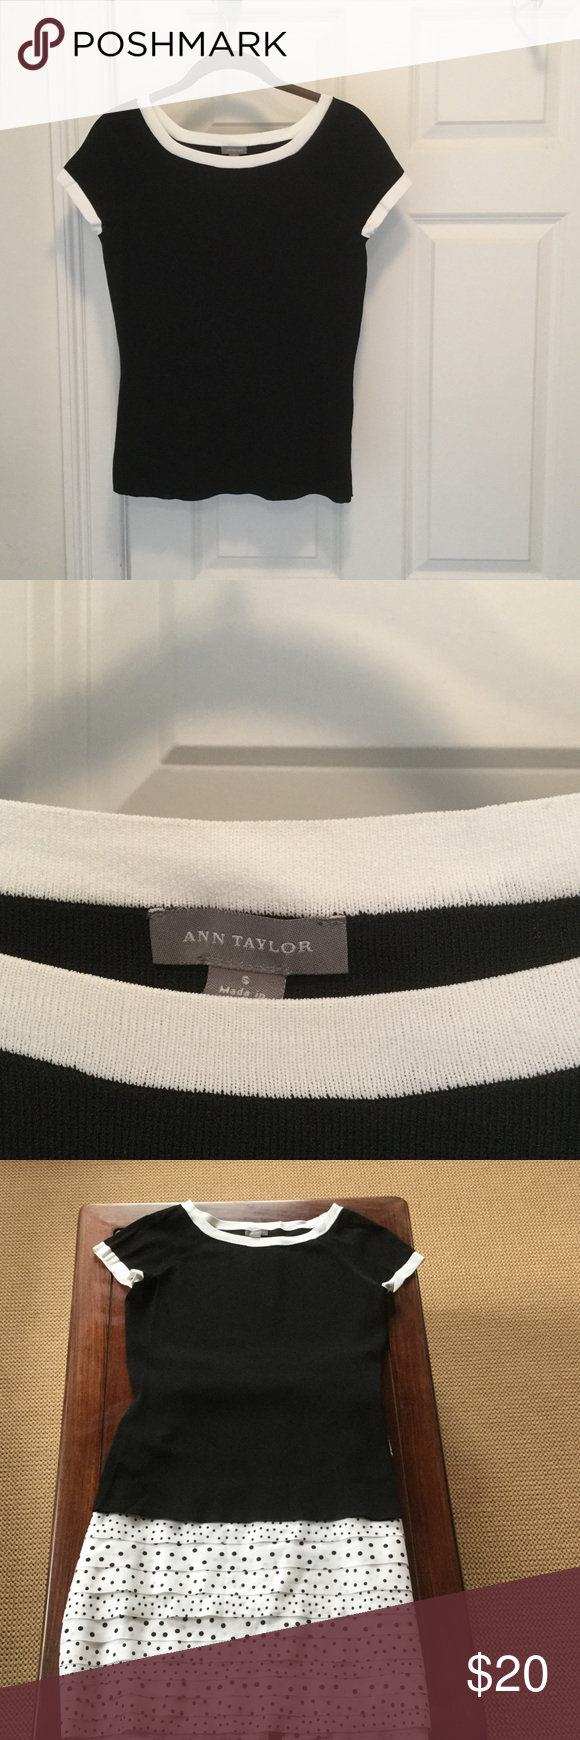 Ann Taylor top Simple, classic black and white top.  Looks great with a white skirt or pants.  Worn just once.  Skirt shown in photo is sold separately in my closet. Ann Taylor Tops